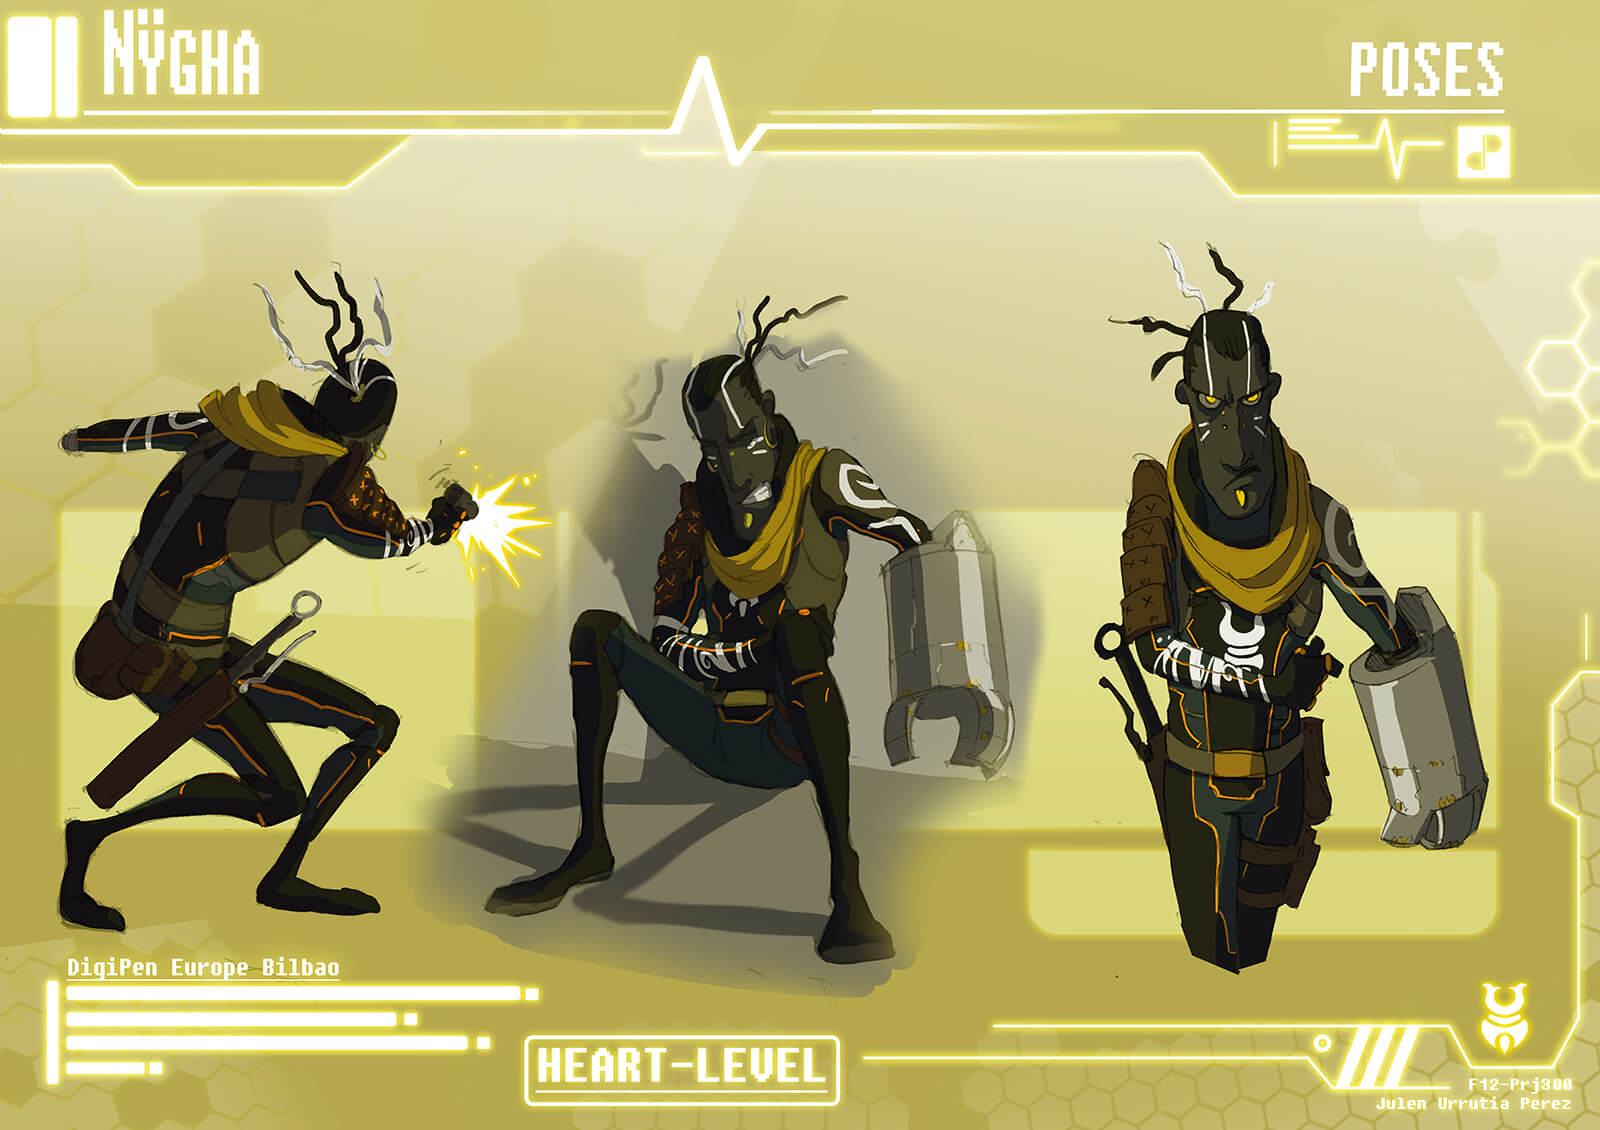 Concept paintings of main character Nygha's various poses